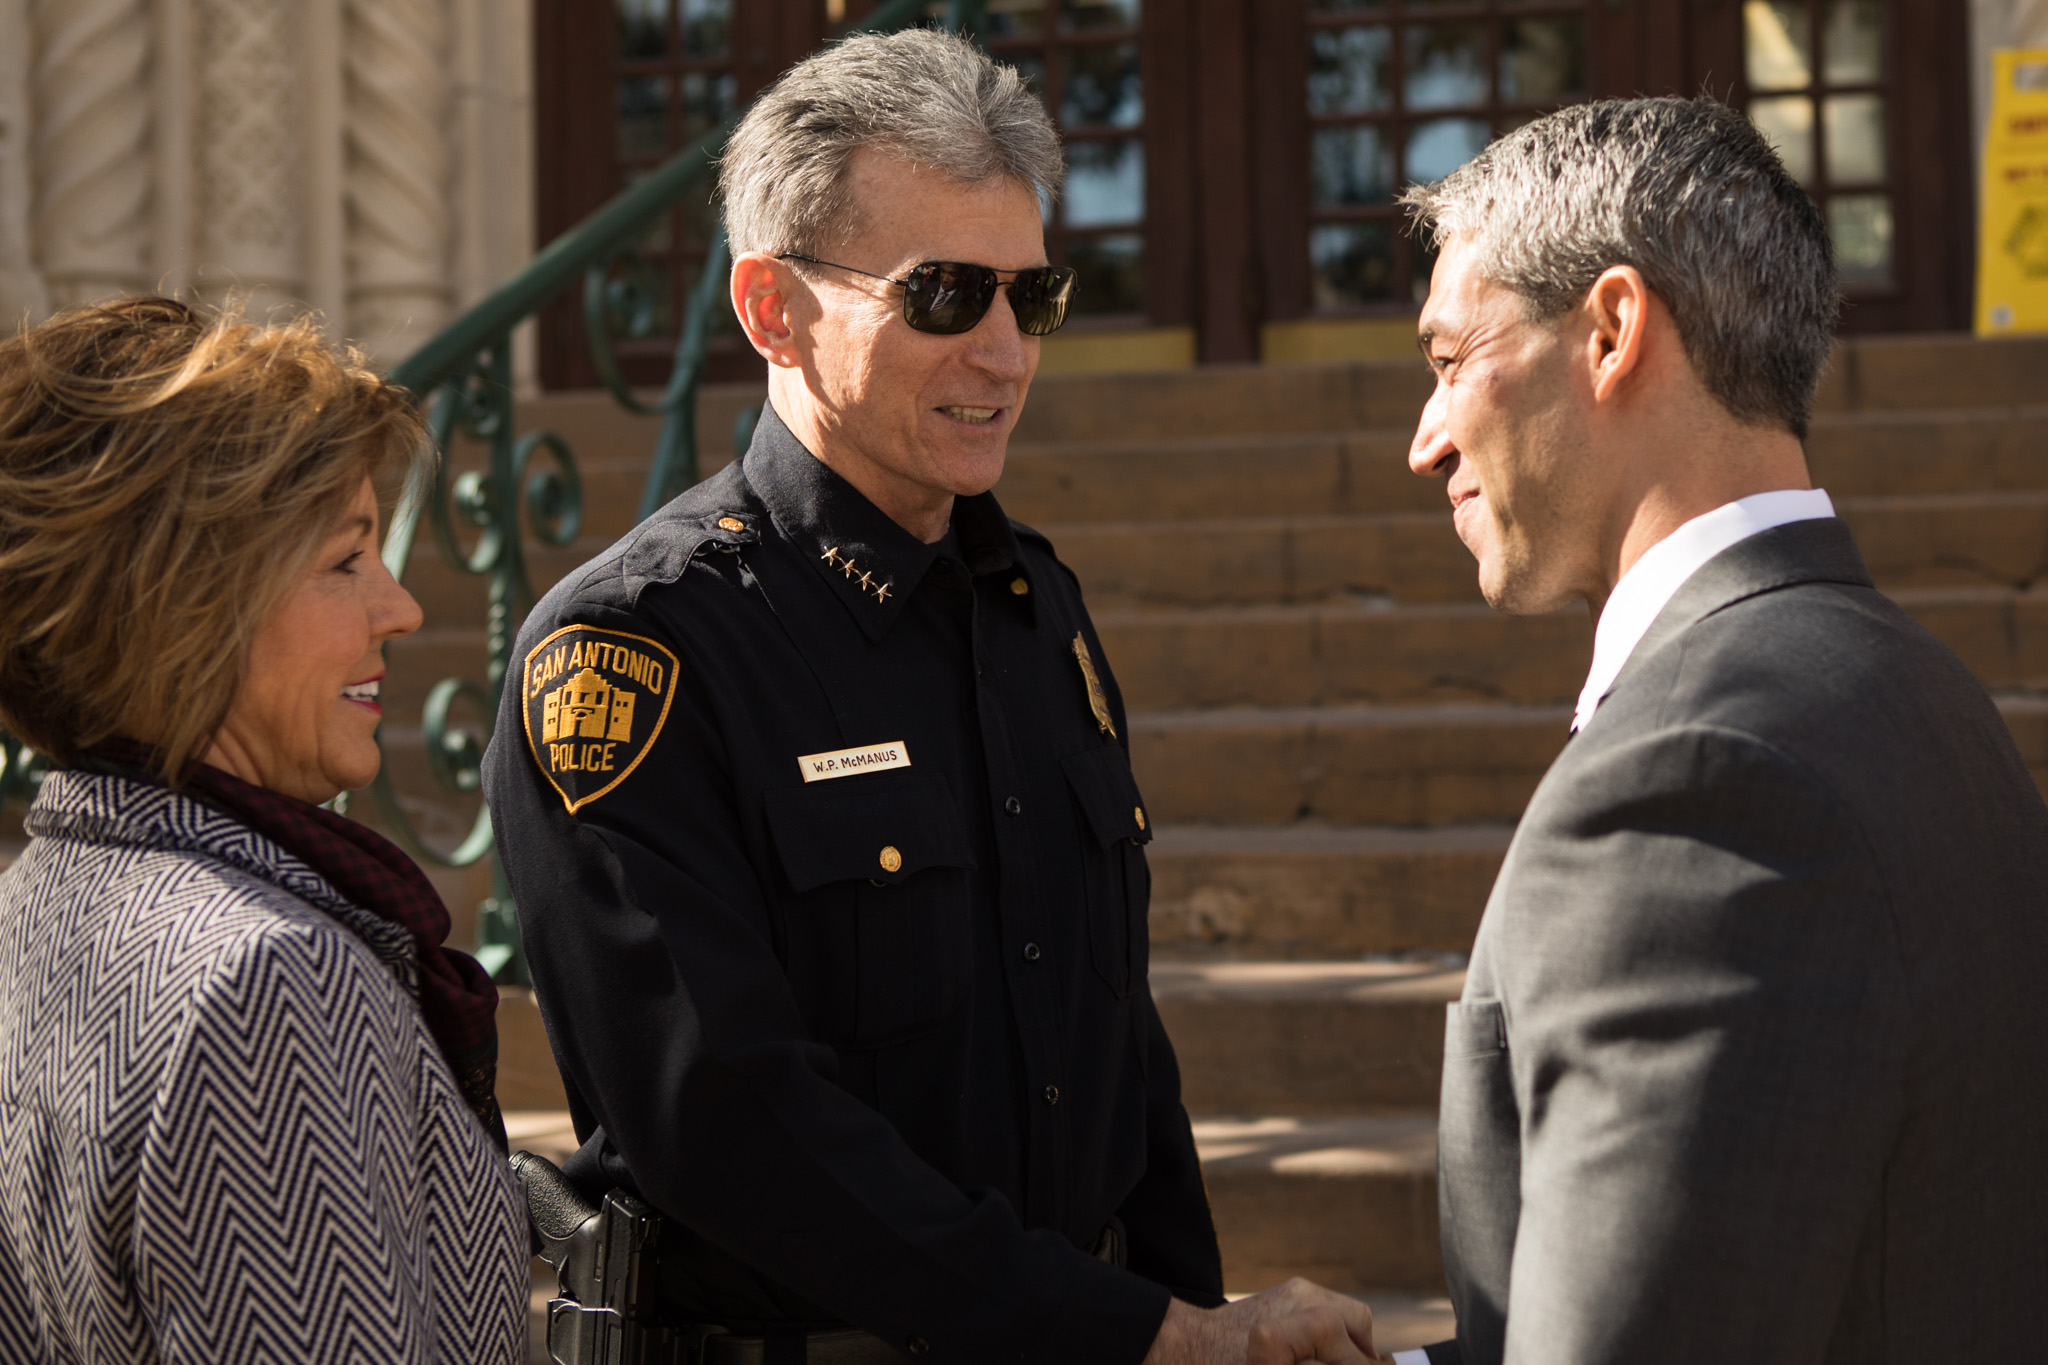 (From left) City Manager Sheryl Sculley, San Antonio Police Chief William McManus, and Mayor Ron Nirenberg greet one another outside of City Hall.